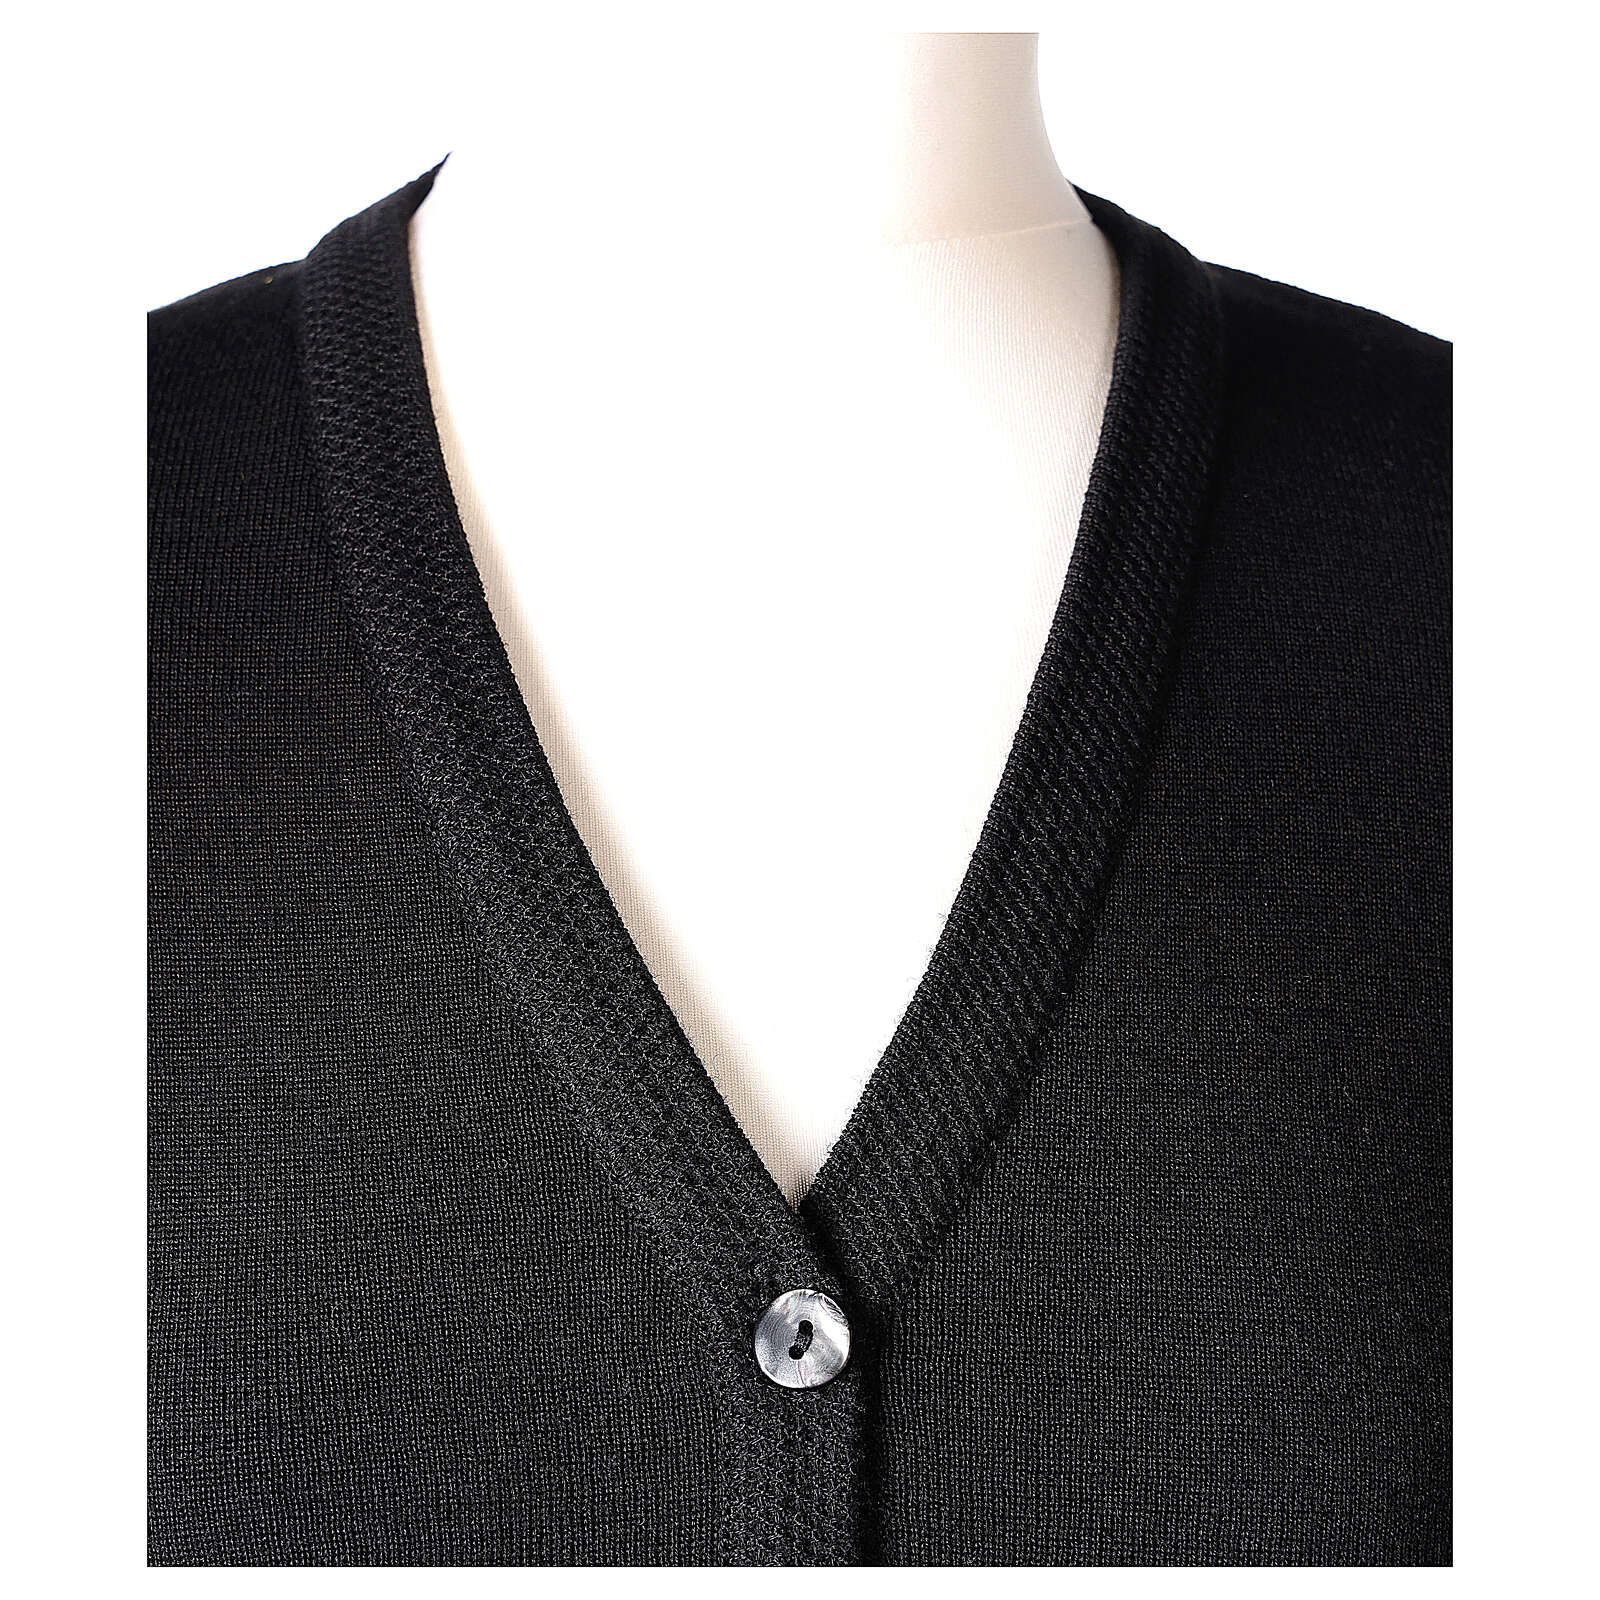 Nun black V-neck cardigan with pockets PLUS SIZES 50% merino wool 50% acrylic In Primis 4